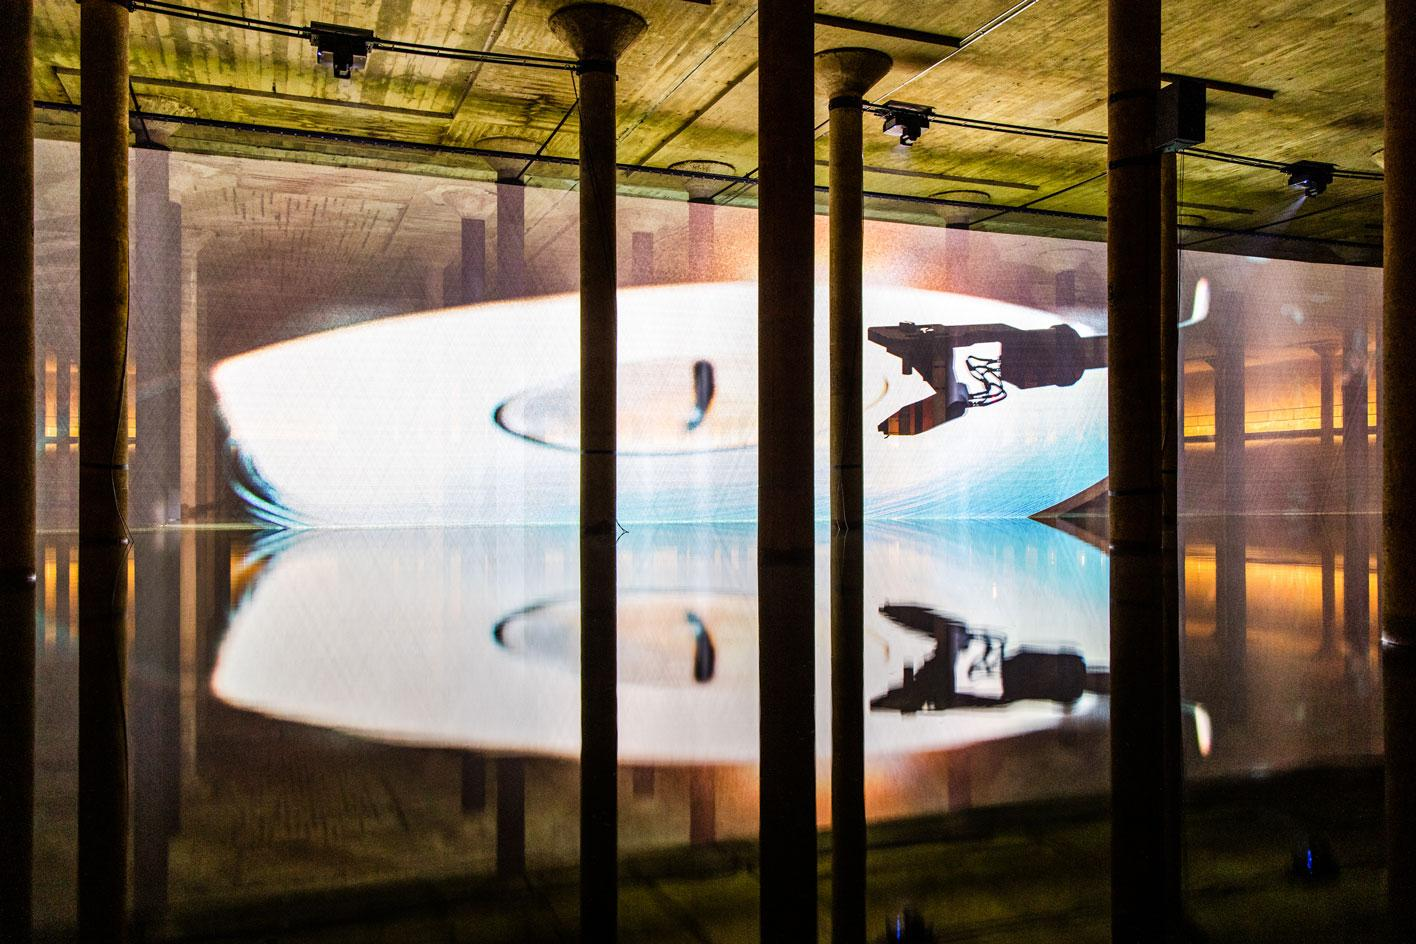 Anri Sala, Time No Longer installation, 2021 in the Buffalo Bayou Park Cistern, Houston